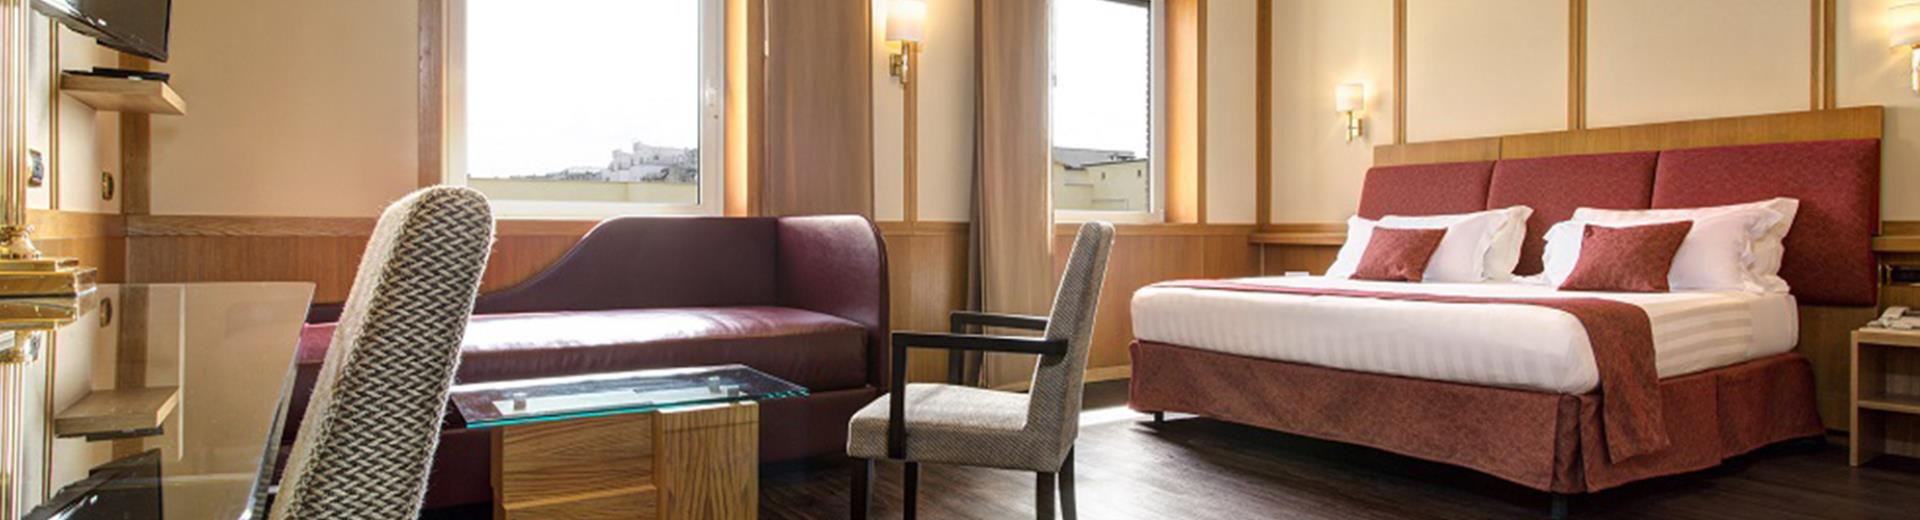 Looking for a hotel for your stay in Roma (RM)? Book/reserve at the Best Western Hotel President